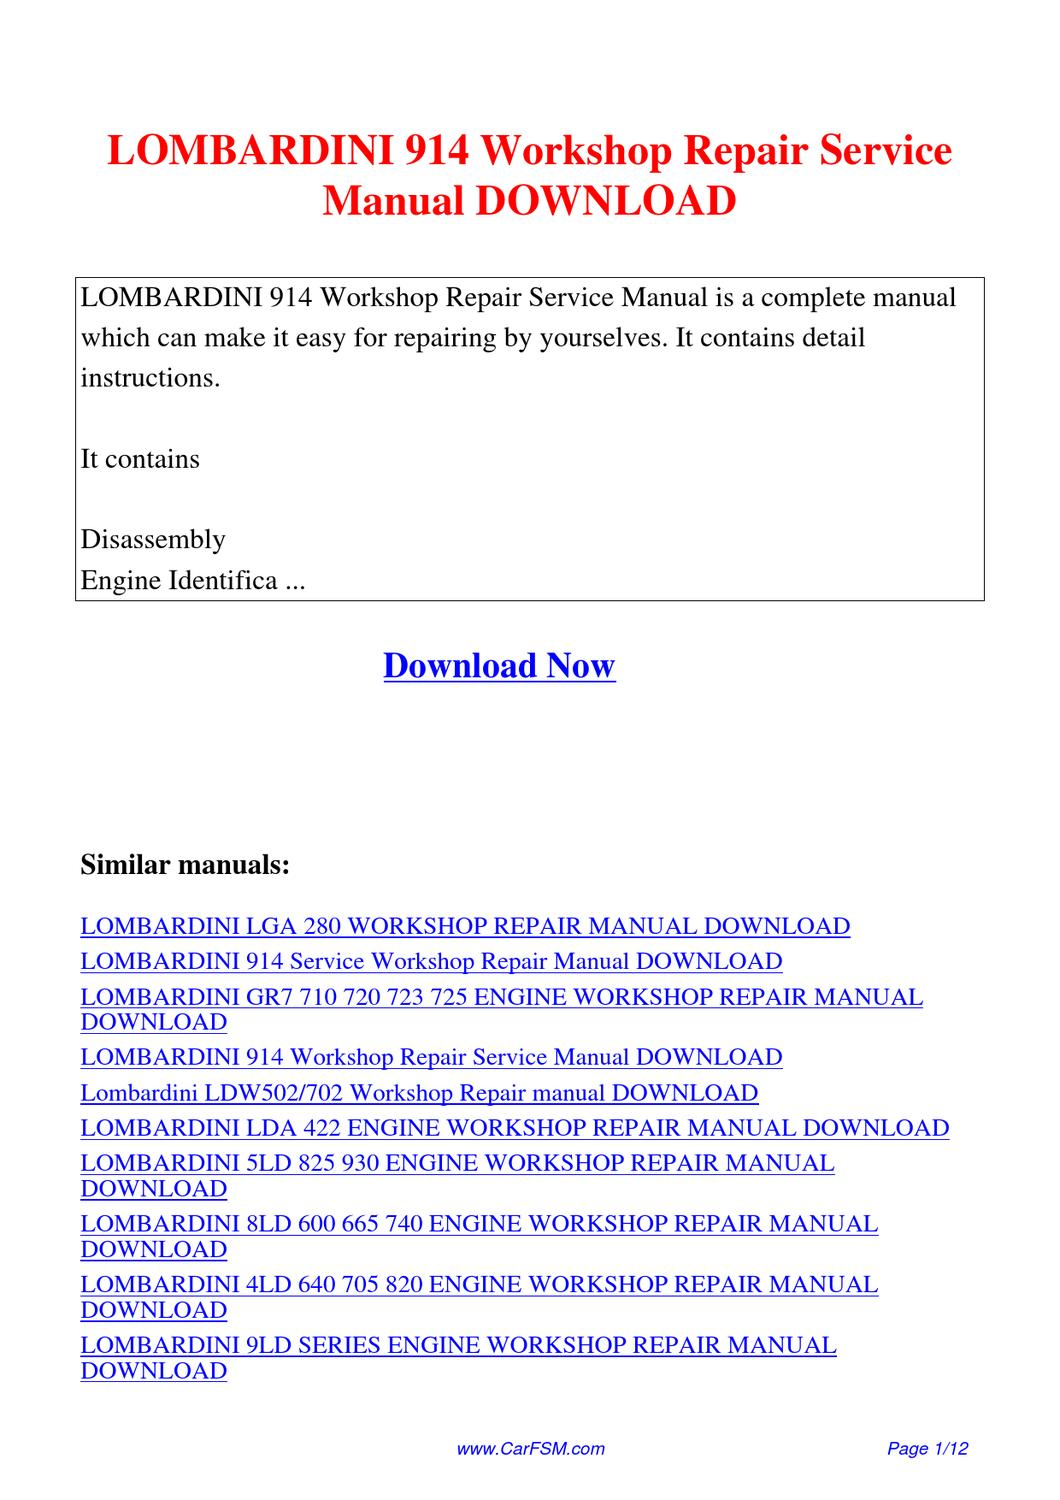 Lombardini 914 Workshop Repair Service Manual By Guang